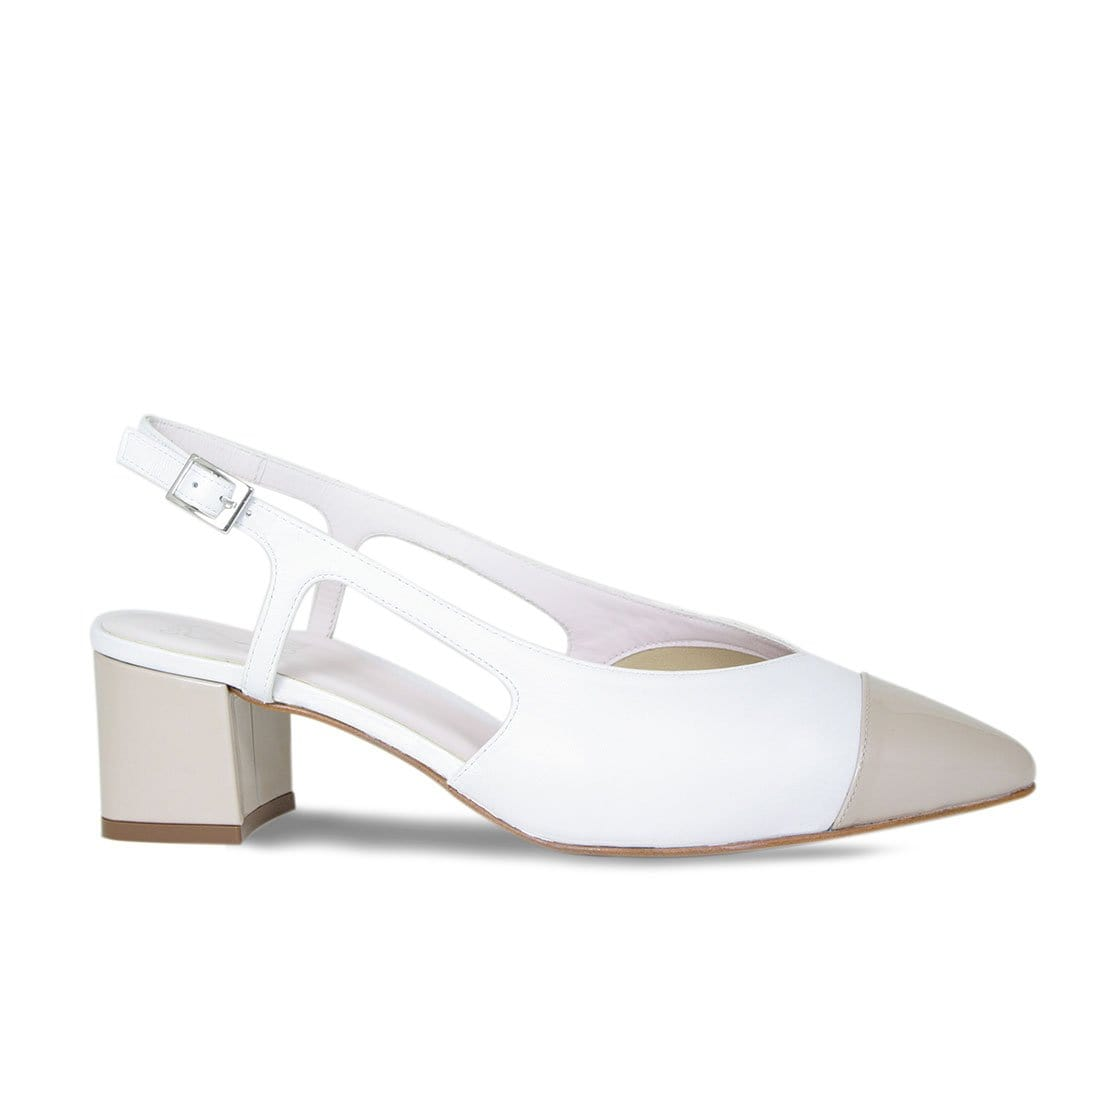 White Leather & Pebble Patent Sling-Back Pumps